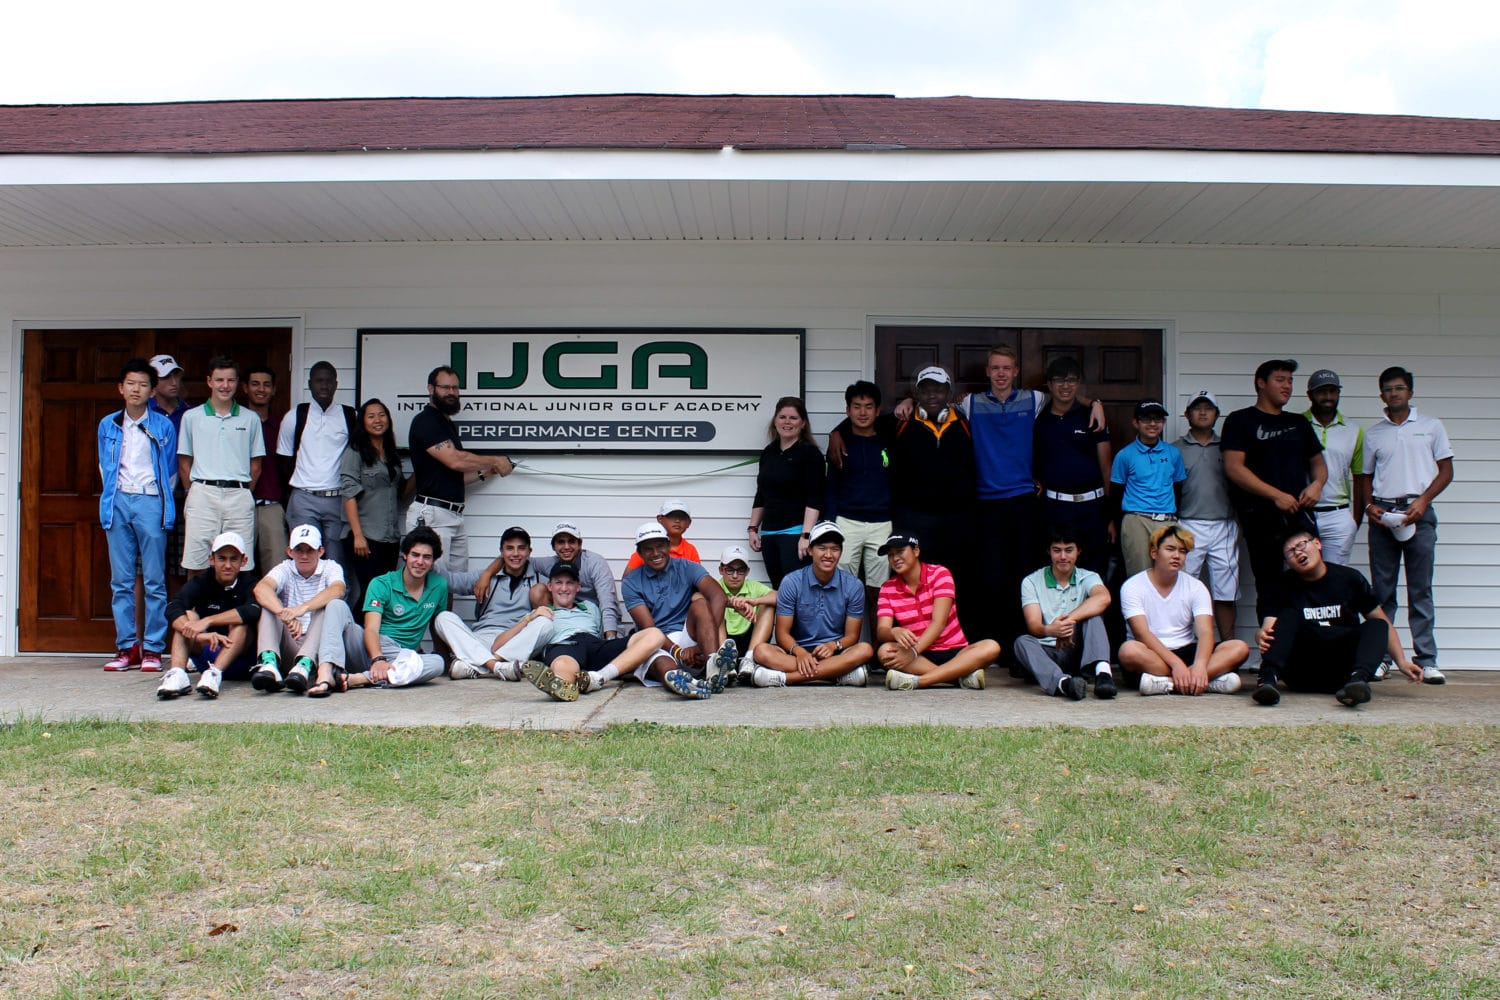 First look at the new IJGA Performance Center